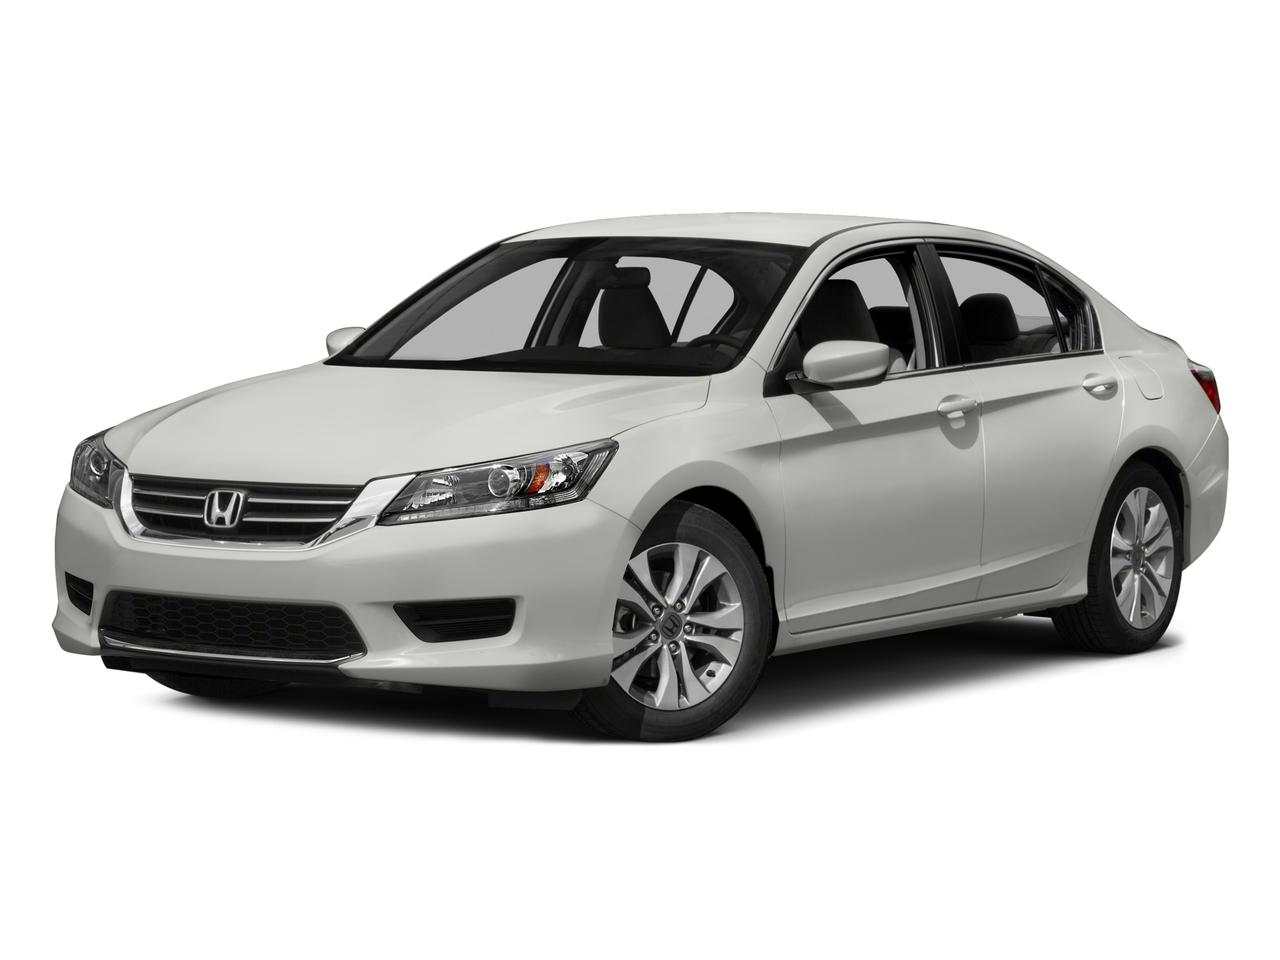 2015 Honda Accord Sedan Vehicle Photo in Bowie, MD 20716